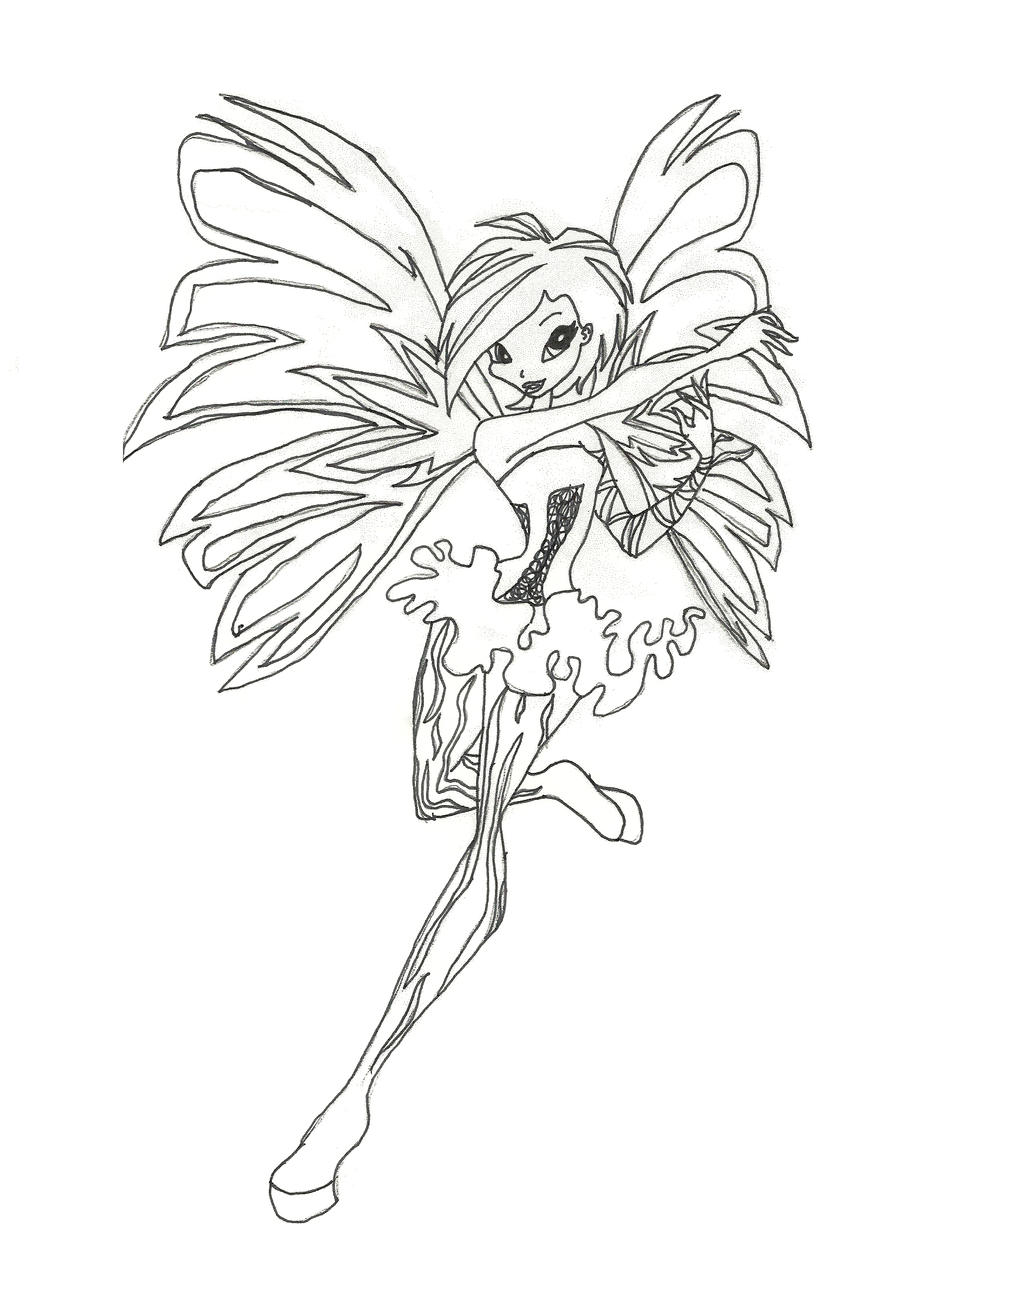 winx club sirenix tecna coloring page by timefairy237 on deviantart